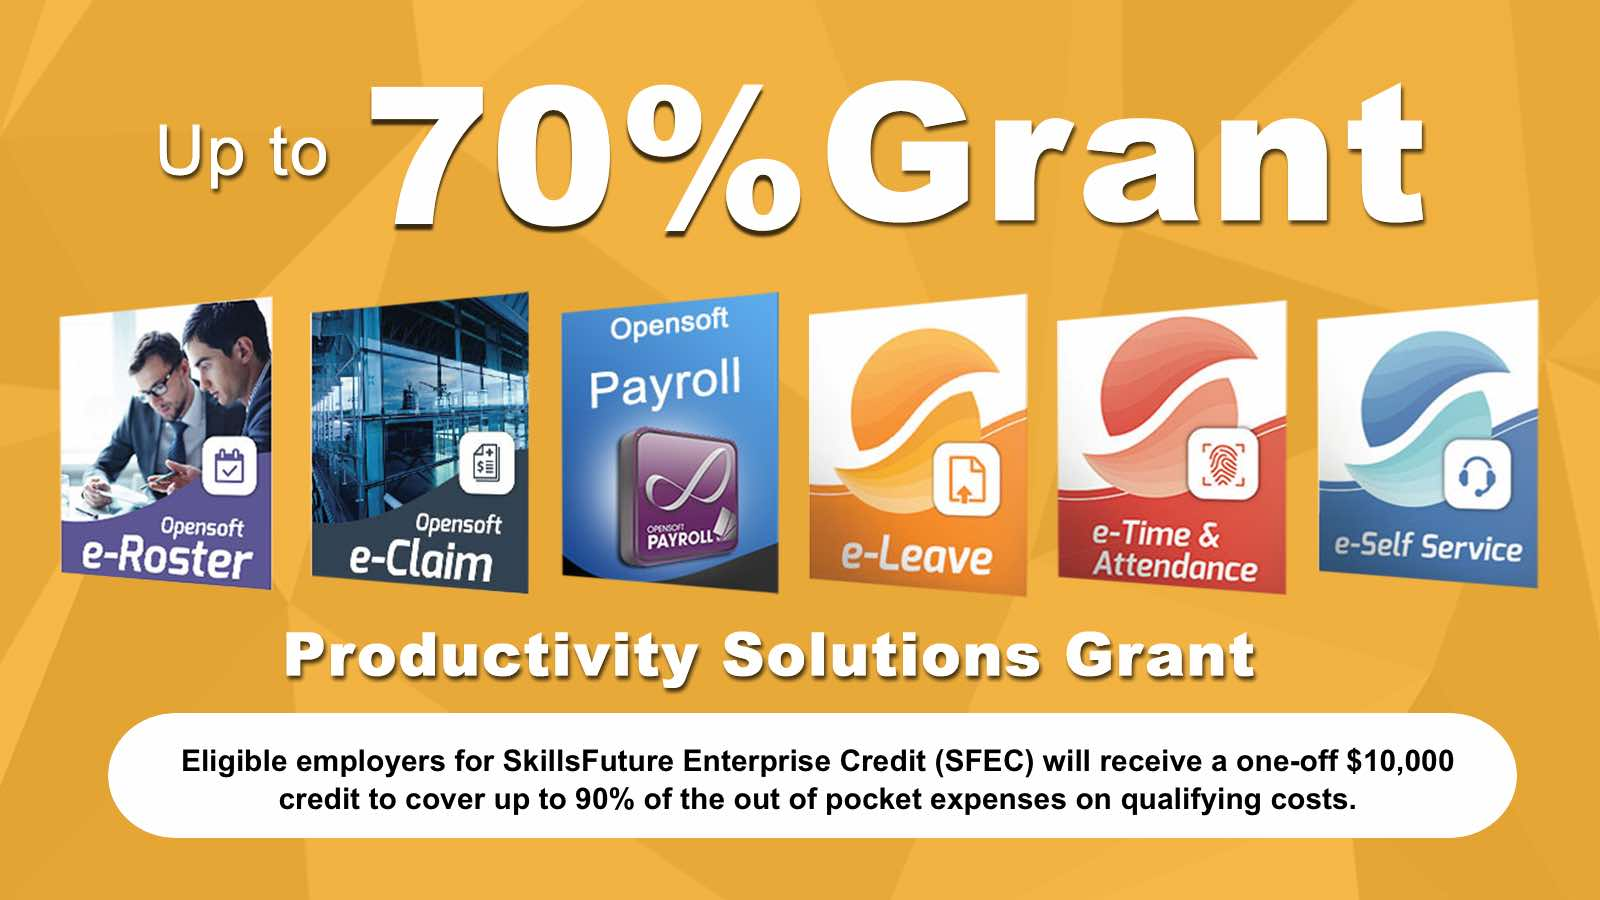 PSG Grant - HR Solutions: Payroll, Leave, Claims, Staff